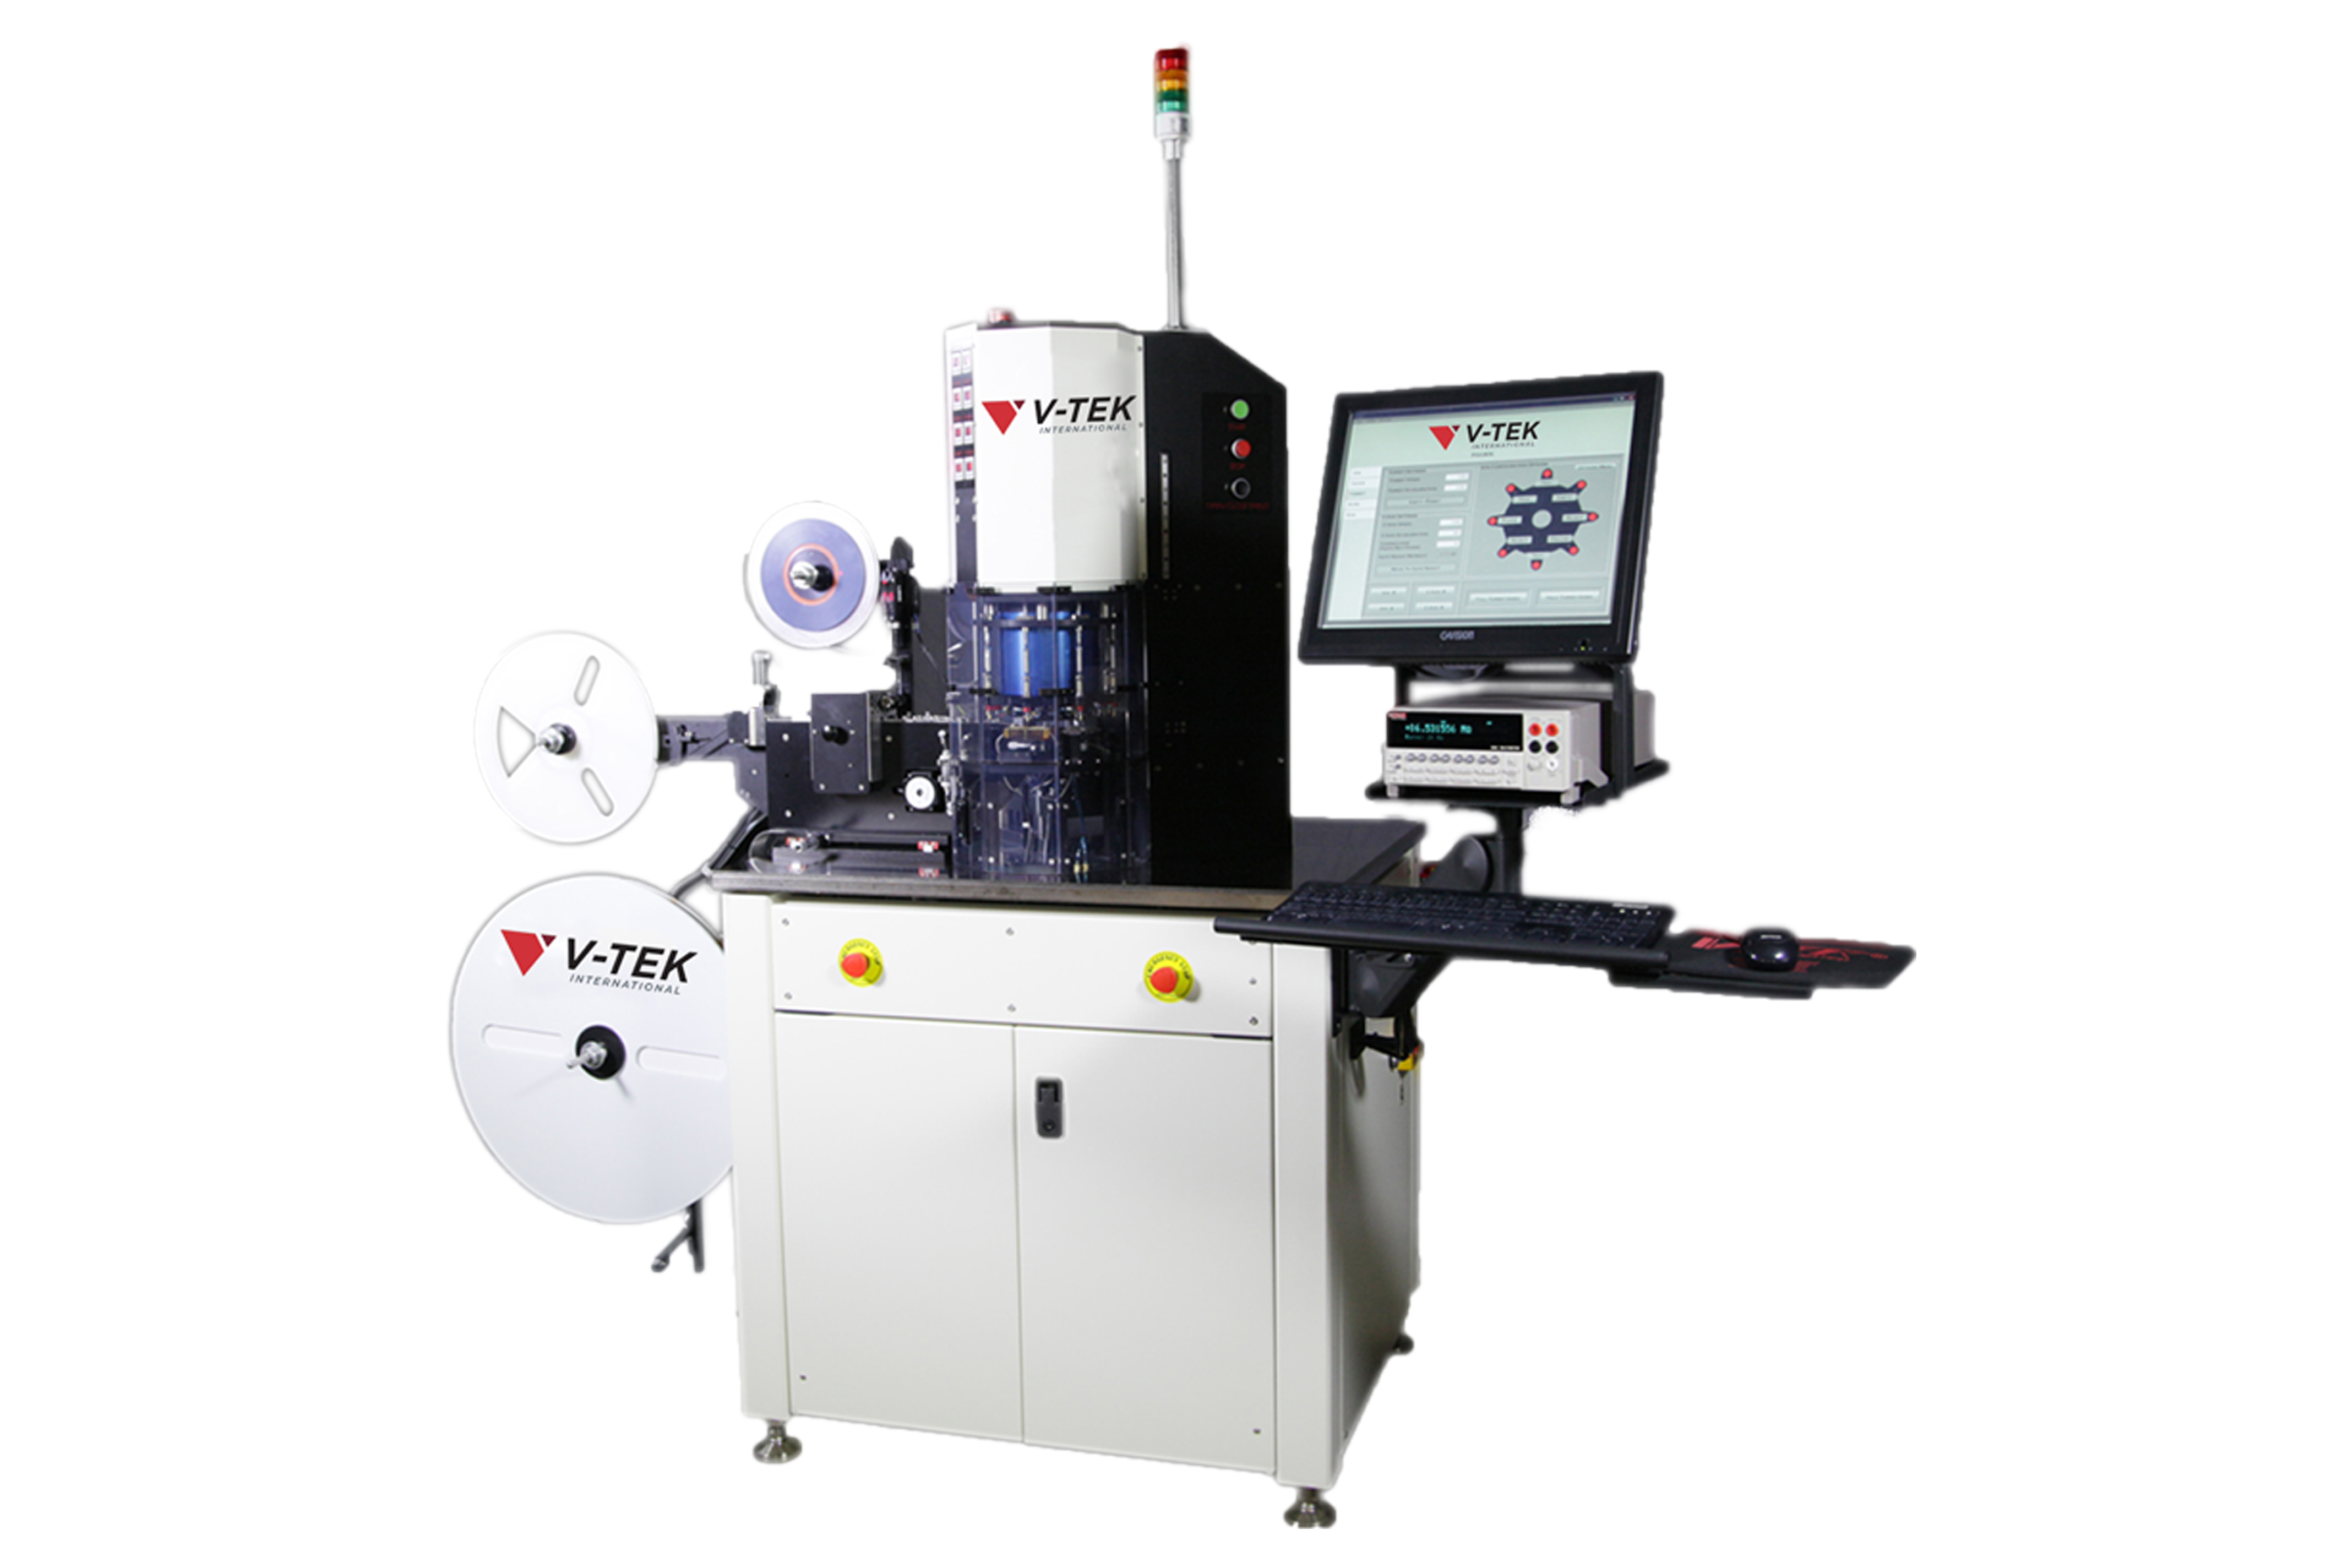 The TM-700 Automatic Taping Machine